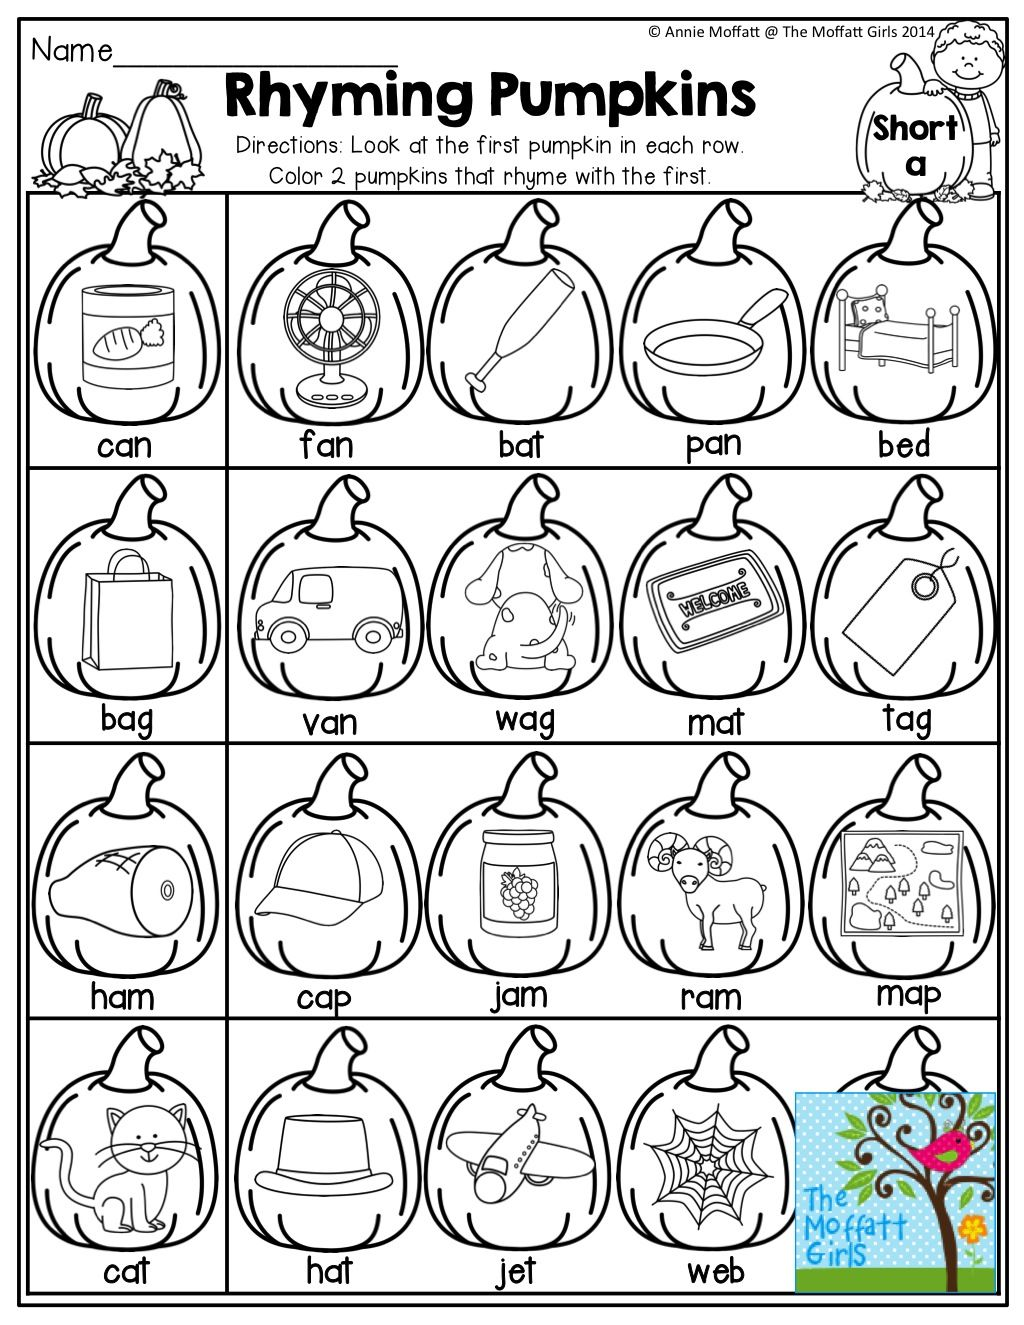 Rhyming Pumpkins Color The Pumpkins That Rhyme And Tons